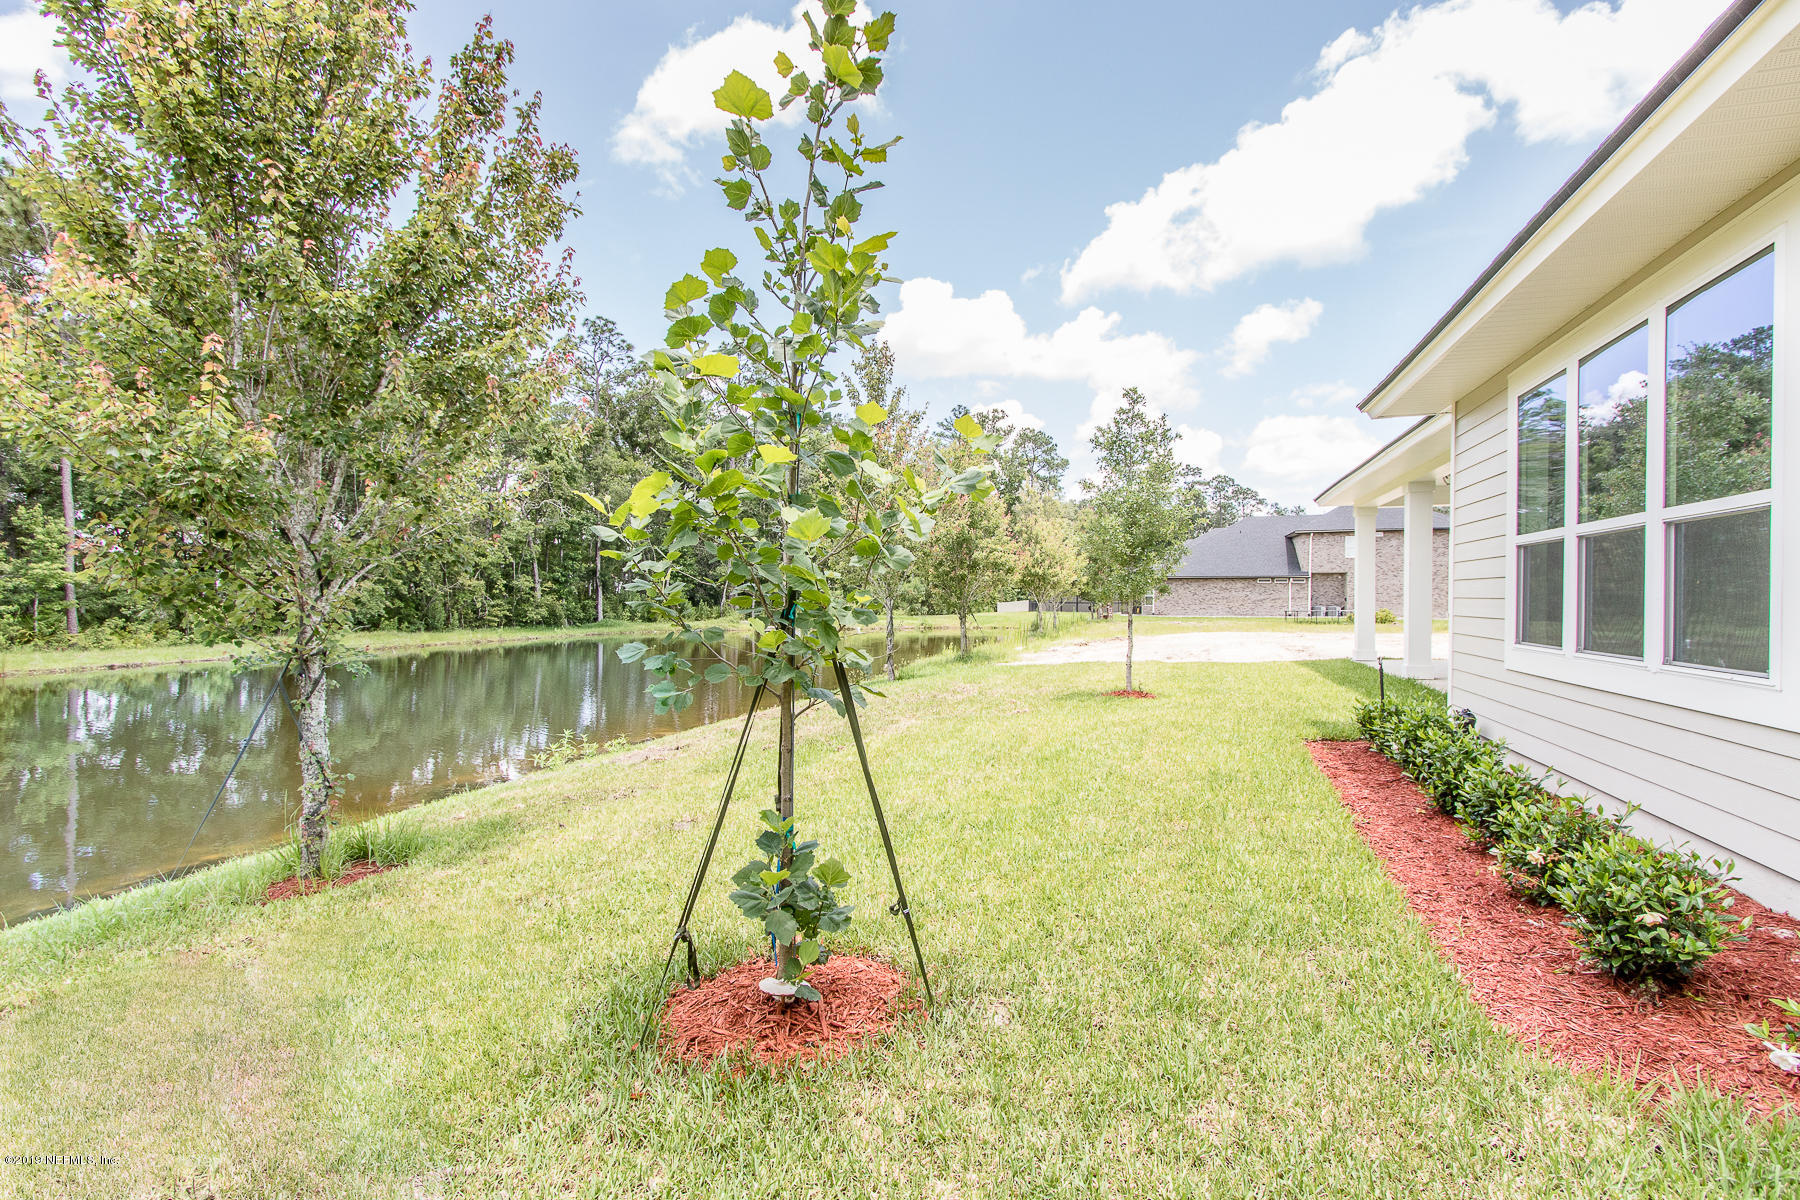 3 FOREST ACRES, JACKSONVILLE, FLORIDA 32234, 3 Bedrooms Bedrooms, ,2 BathroomsBathrooms,Residential,For sale,FOREST ACRES,988847